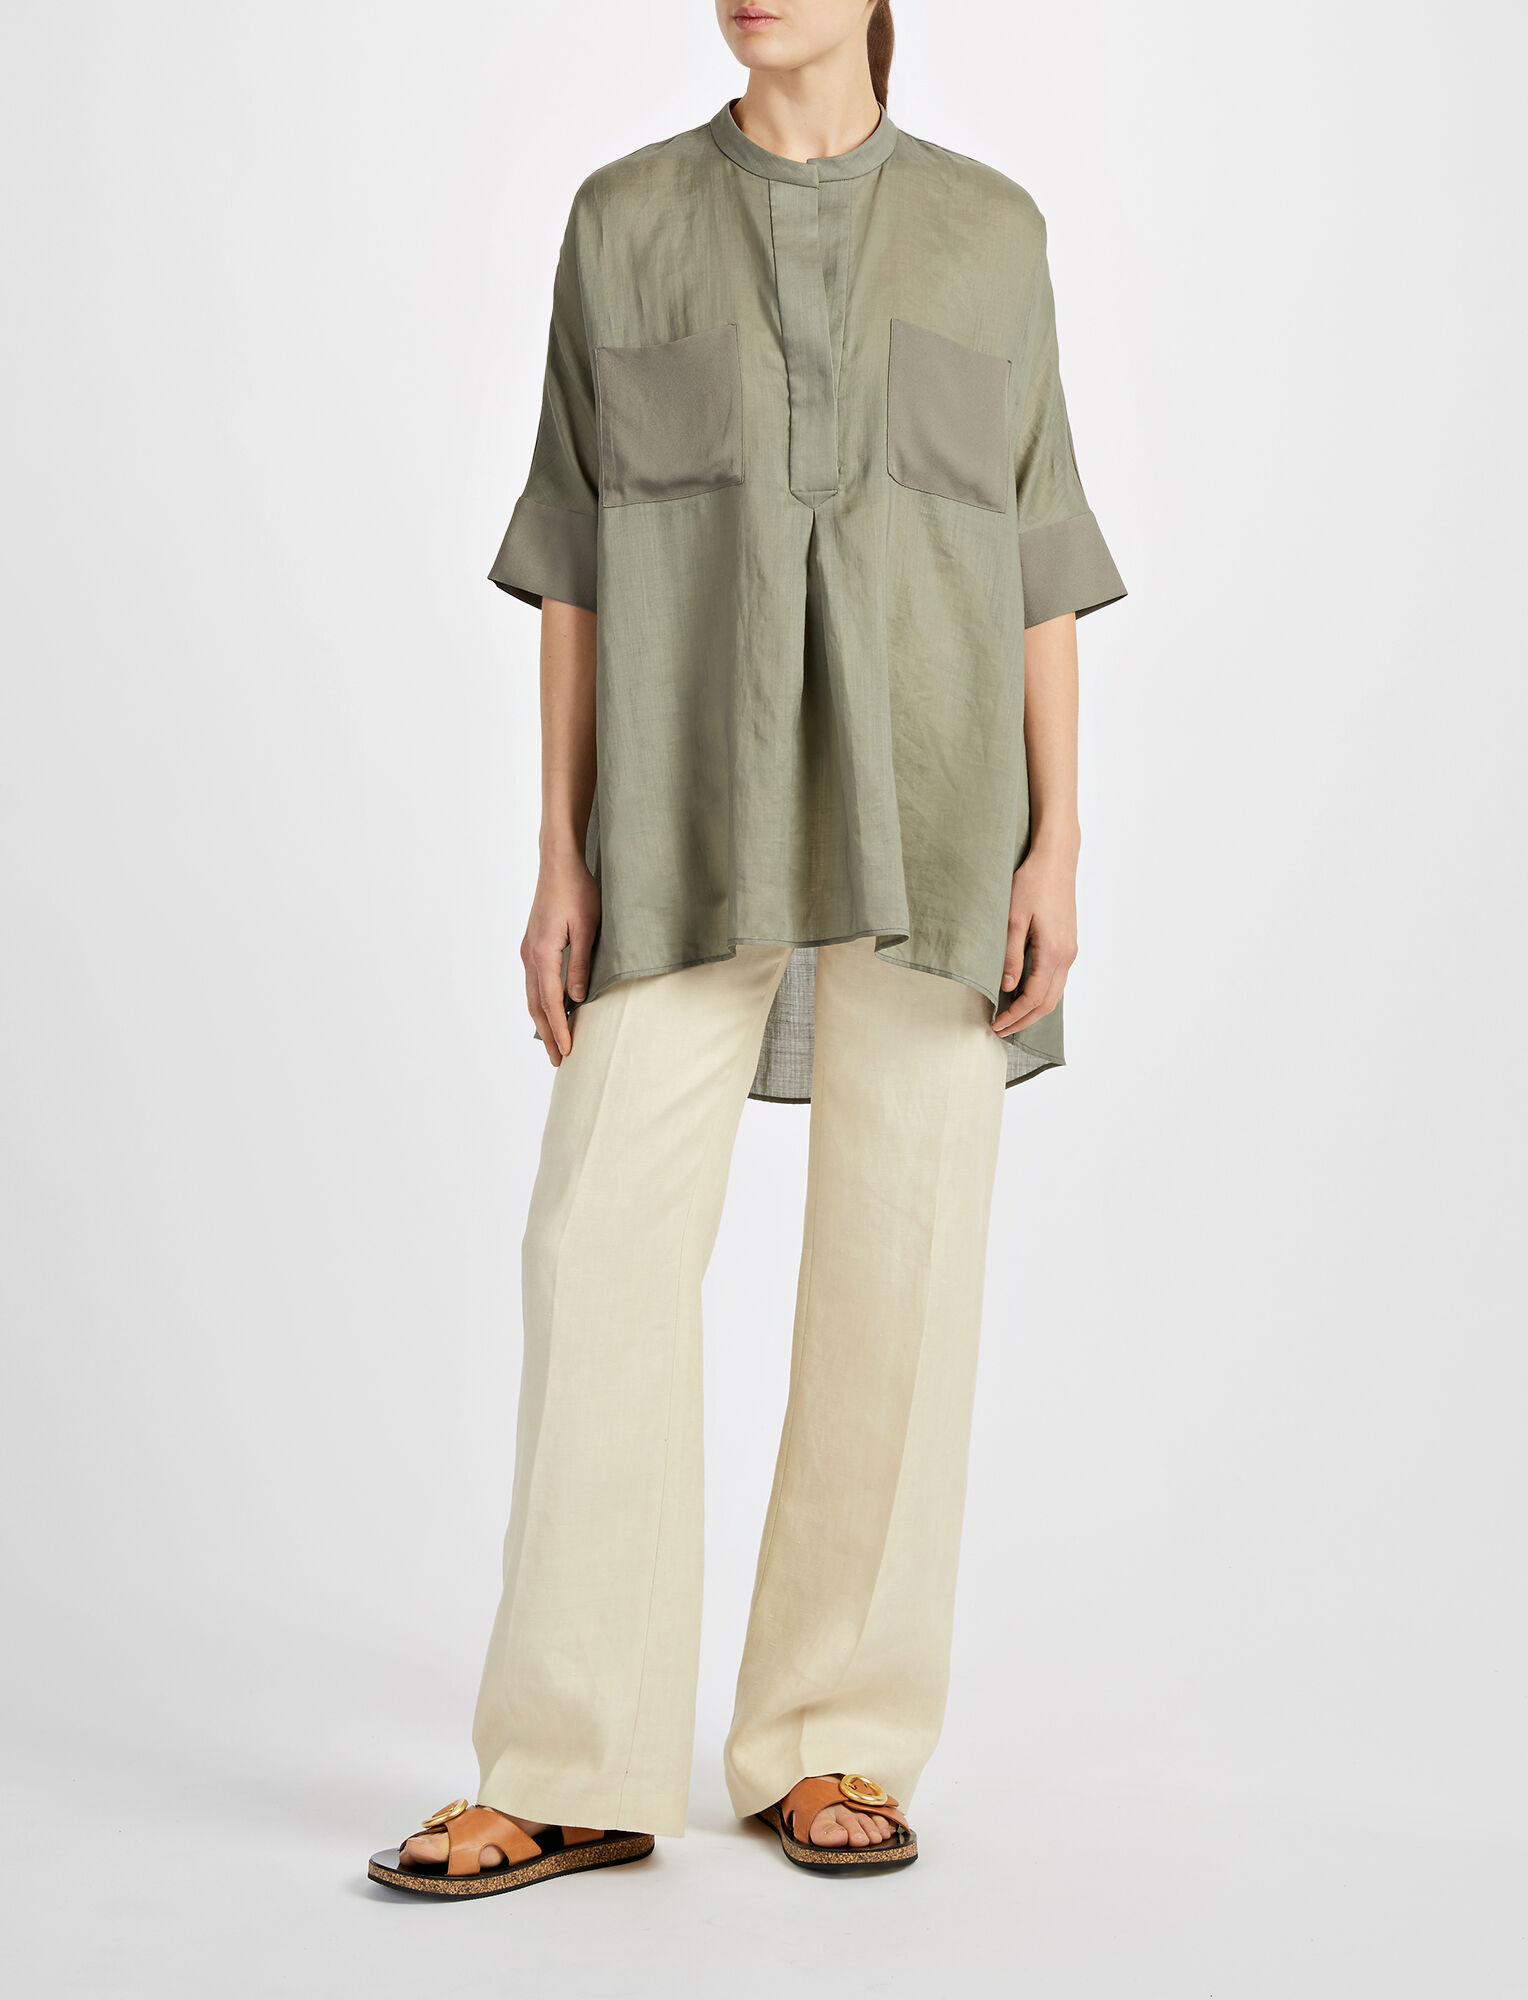 Joseph, Ramie Voile Heather Blouse, in FATIGUE